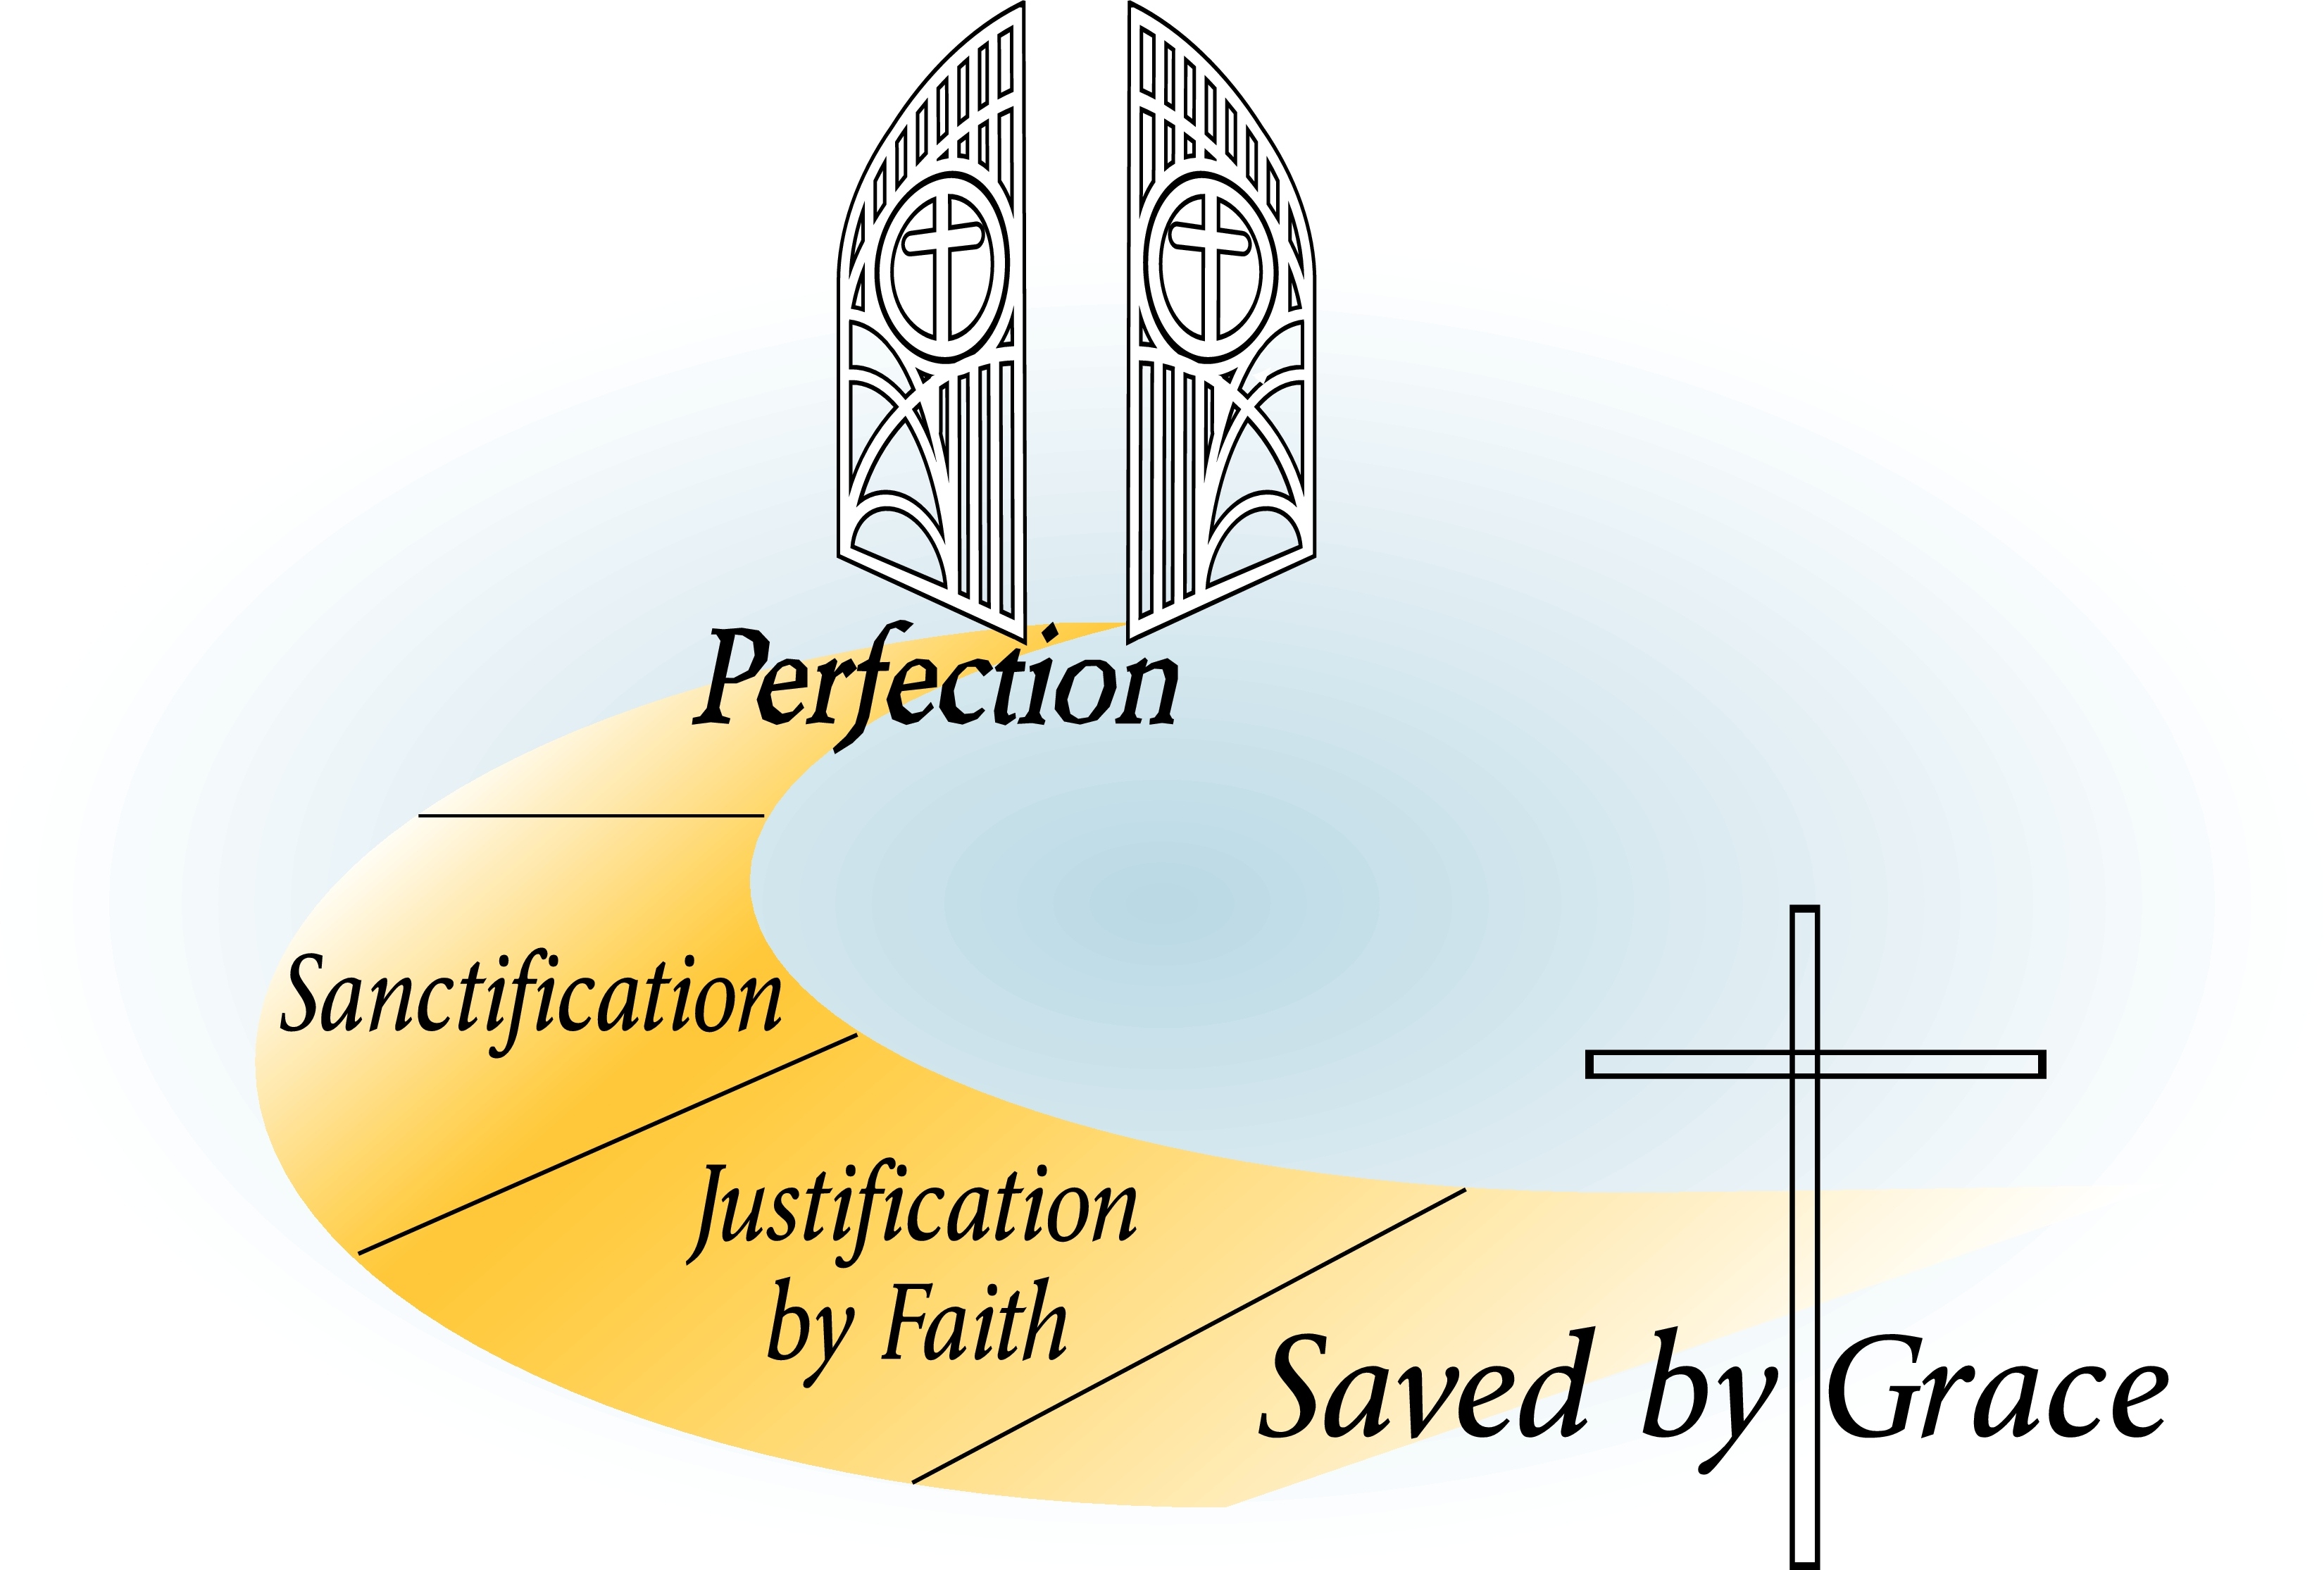 Pursuing perfection part i defined perfectionism and helped us view it